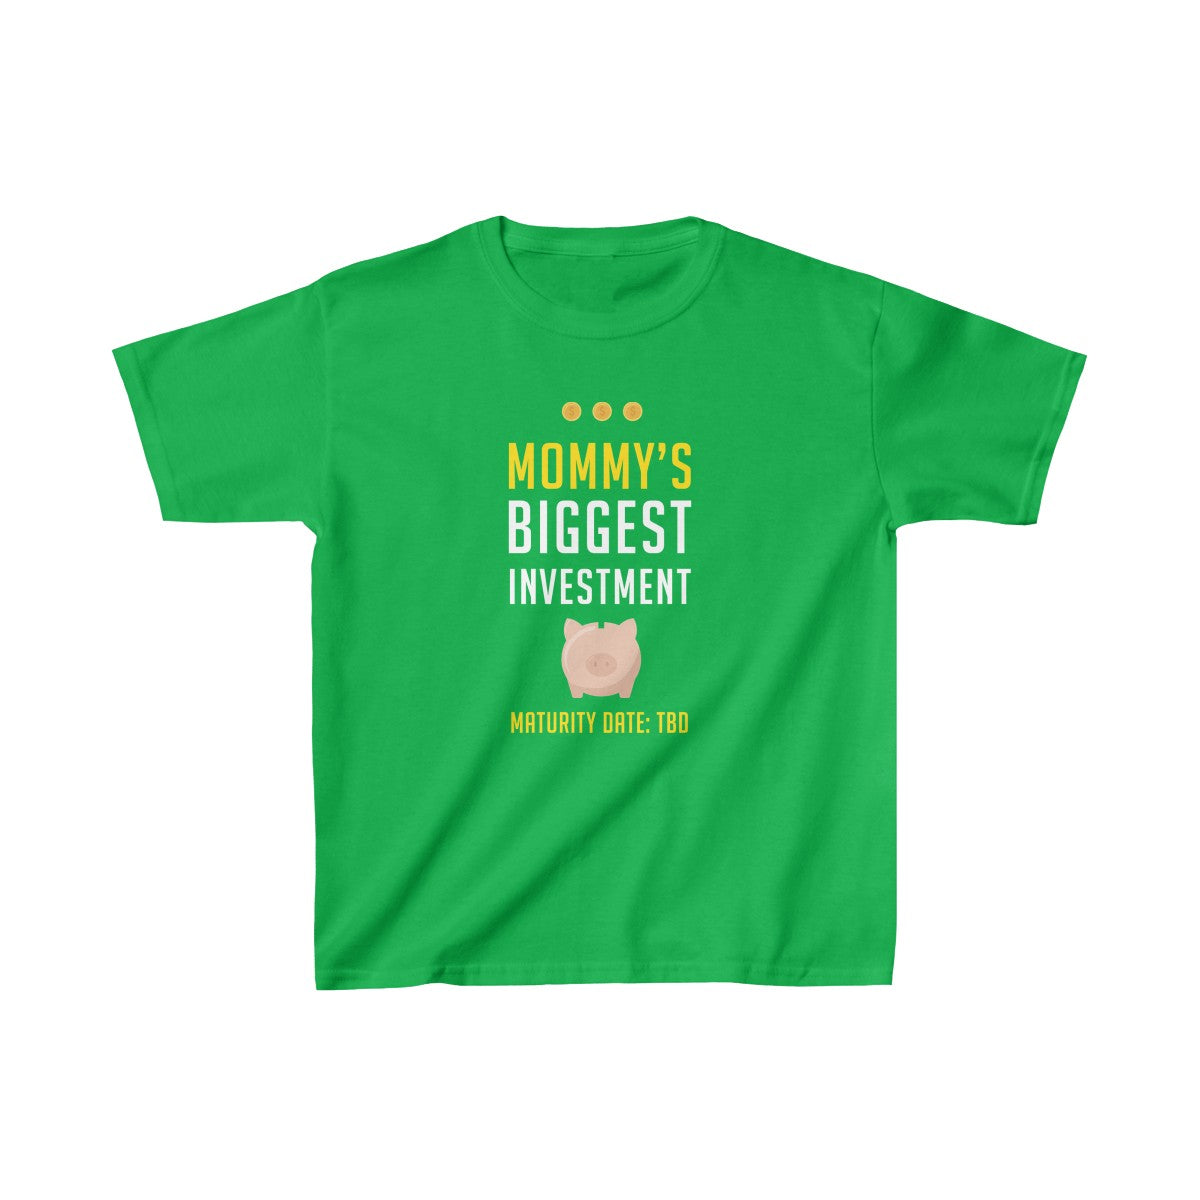 Mommy's Biggest Investment: Maturity Date TBD™ Kids Tee